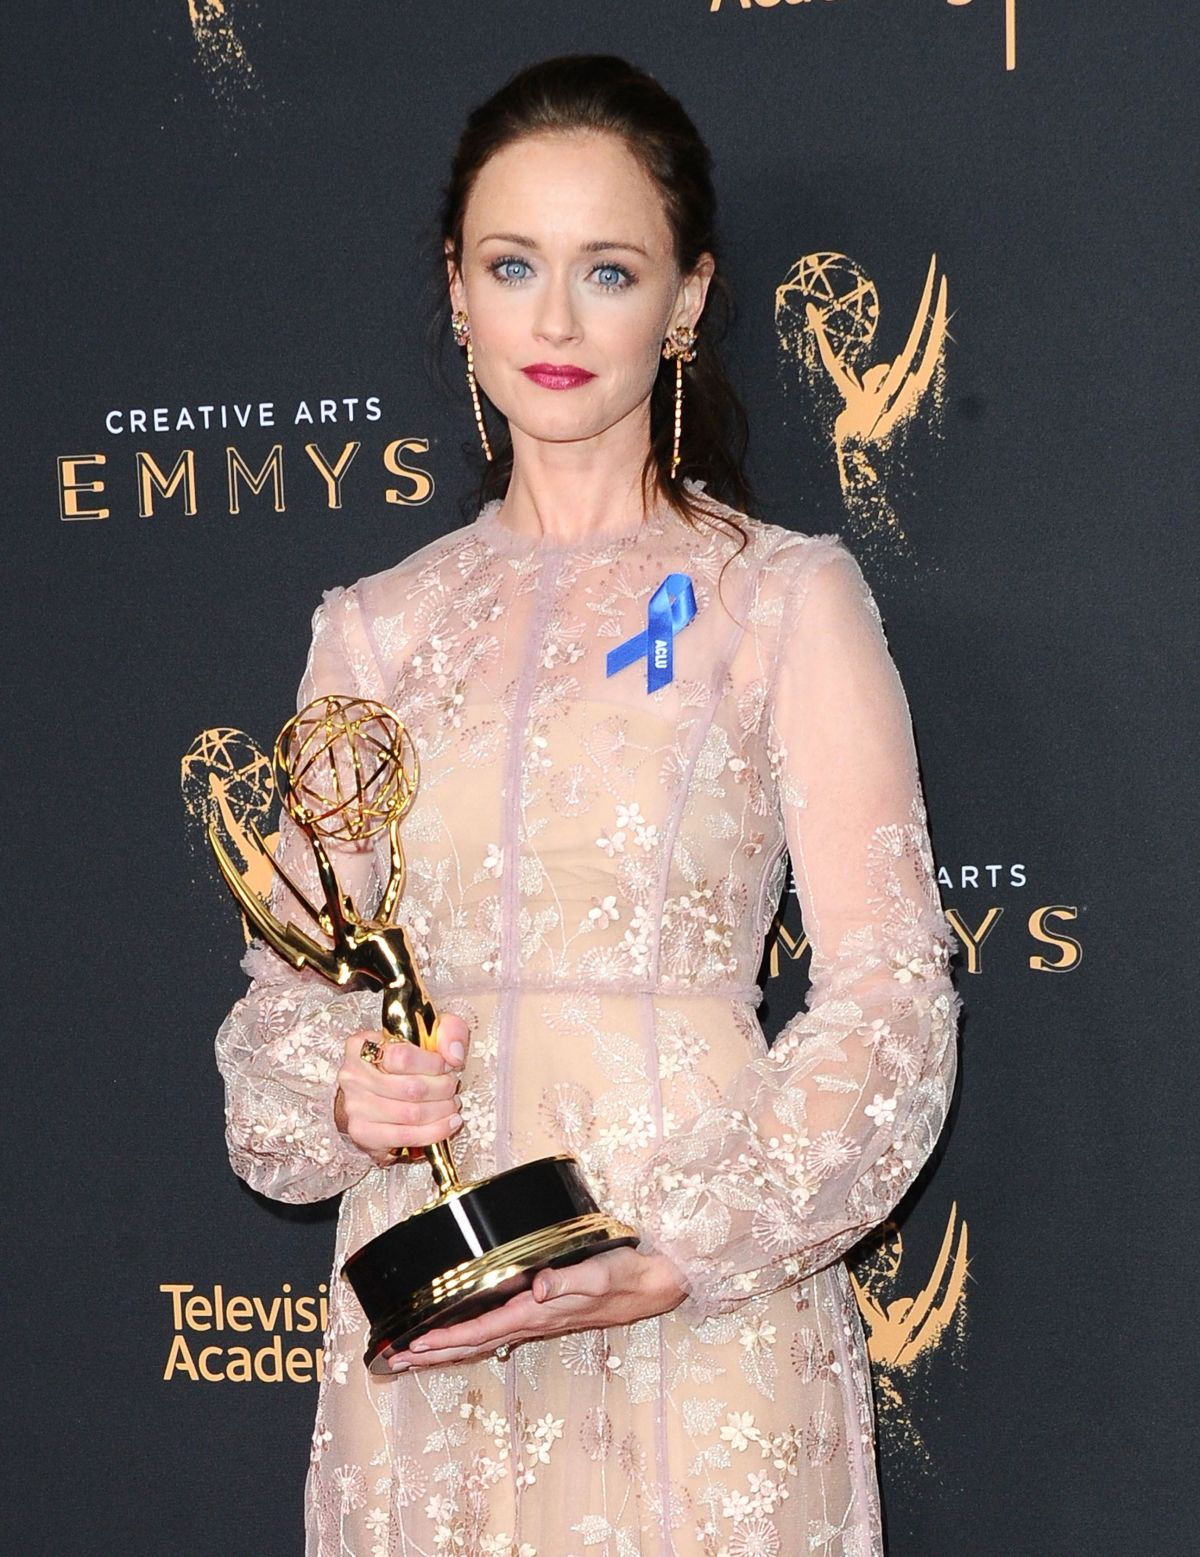 ALEXIS BLEDEL at Creative Arts Emmy Awards in Los Angeles 09/10/2017